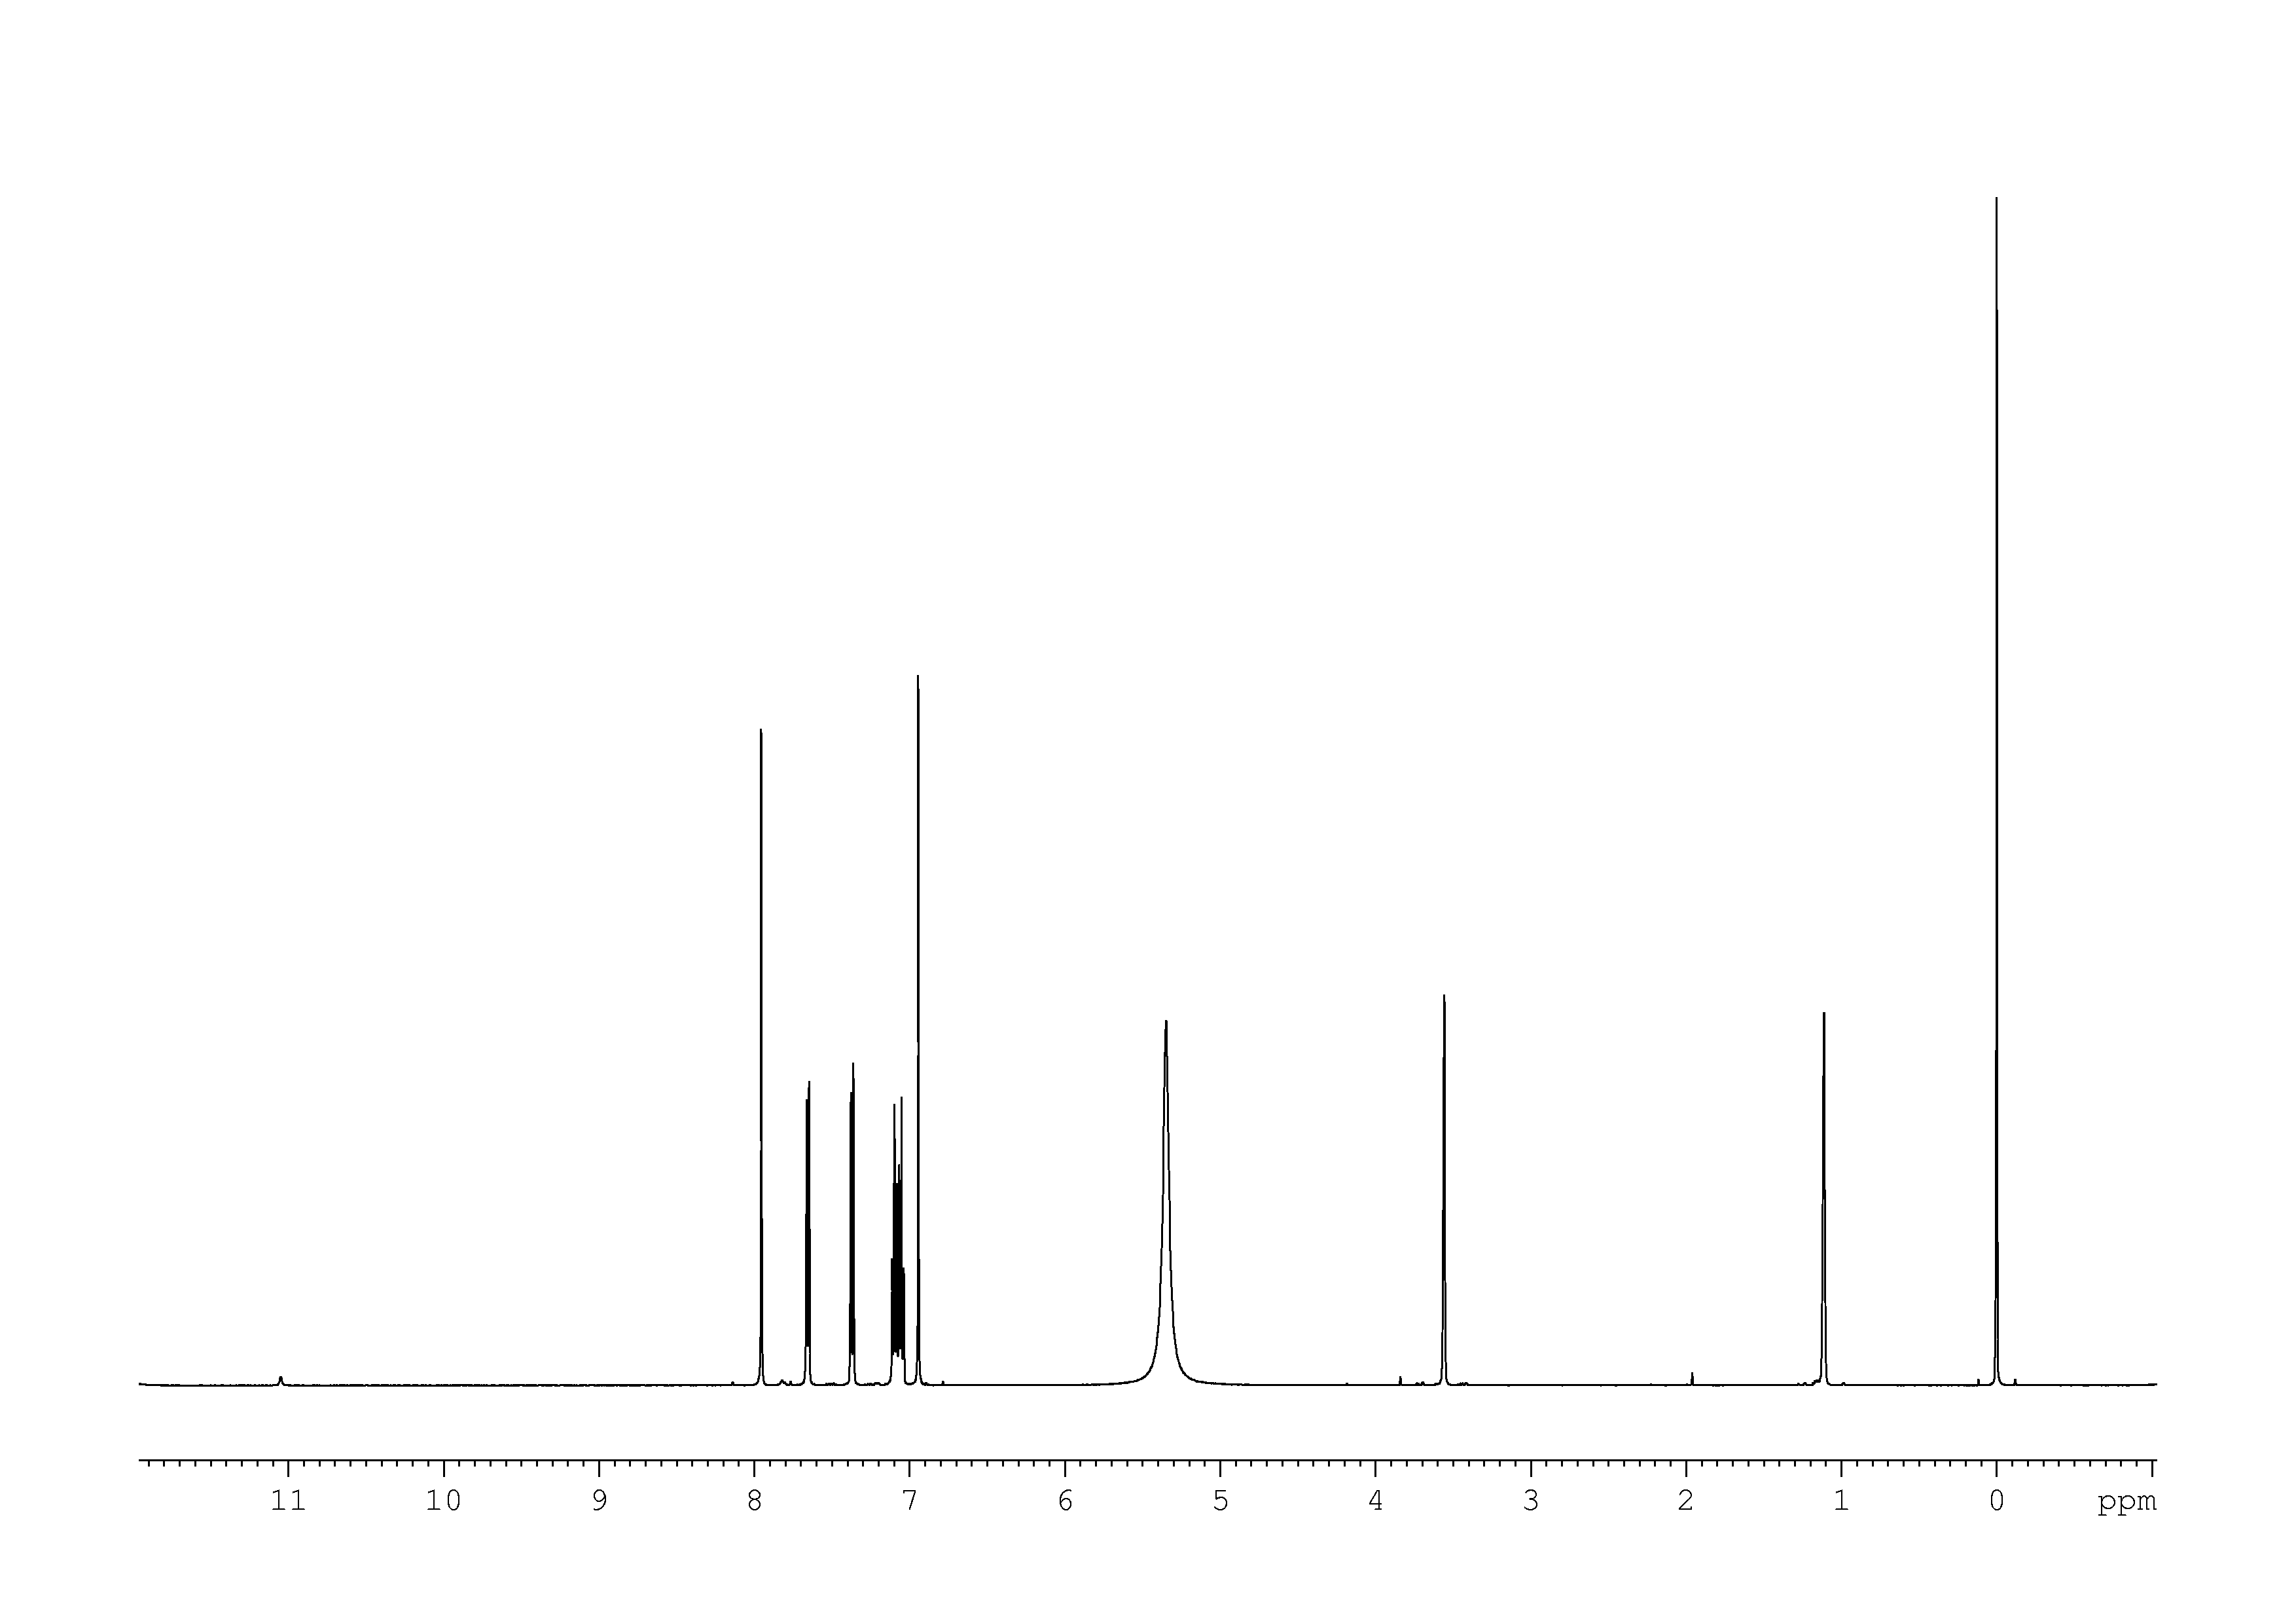 1D 1H, n/a spectrum for indole-3-pyruvic acid